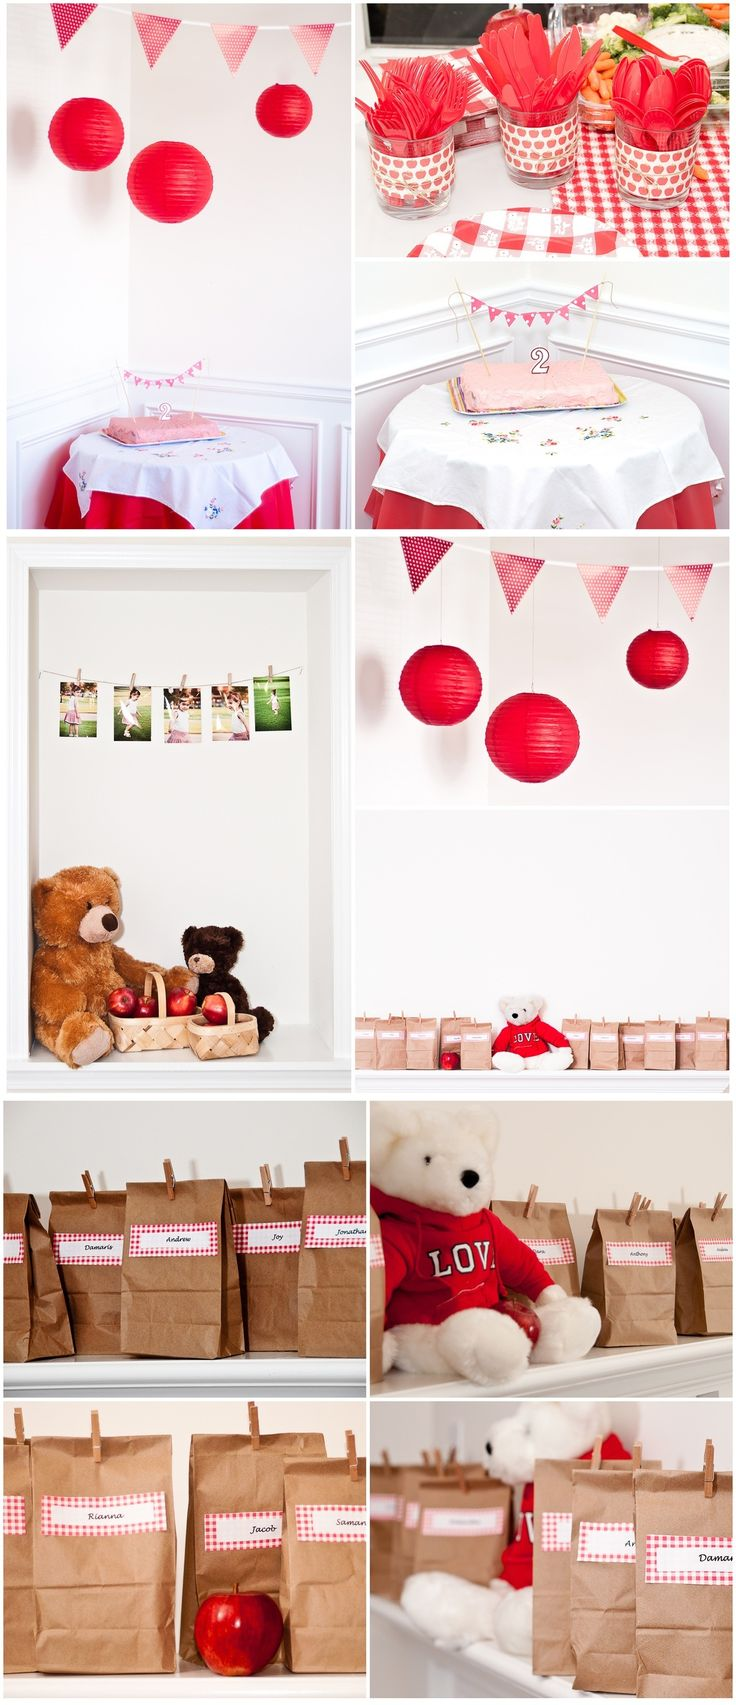 Teddy bear picnic - brown paper, red gingham